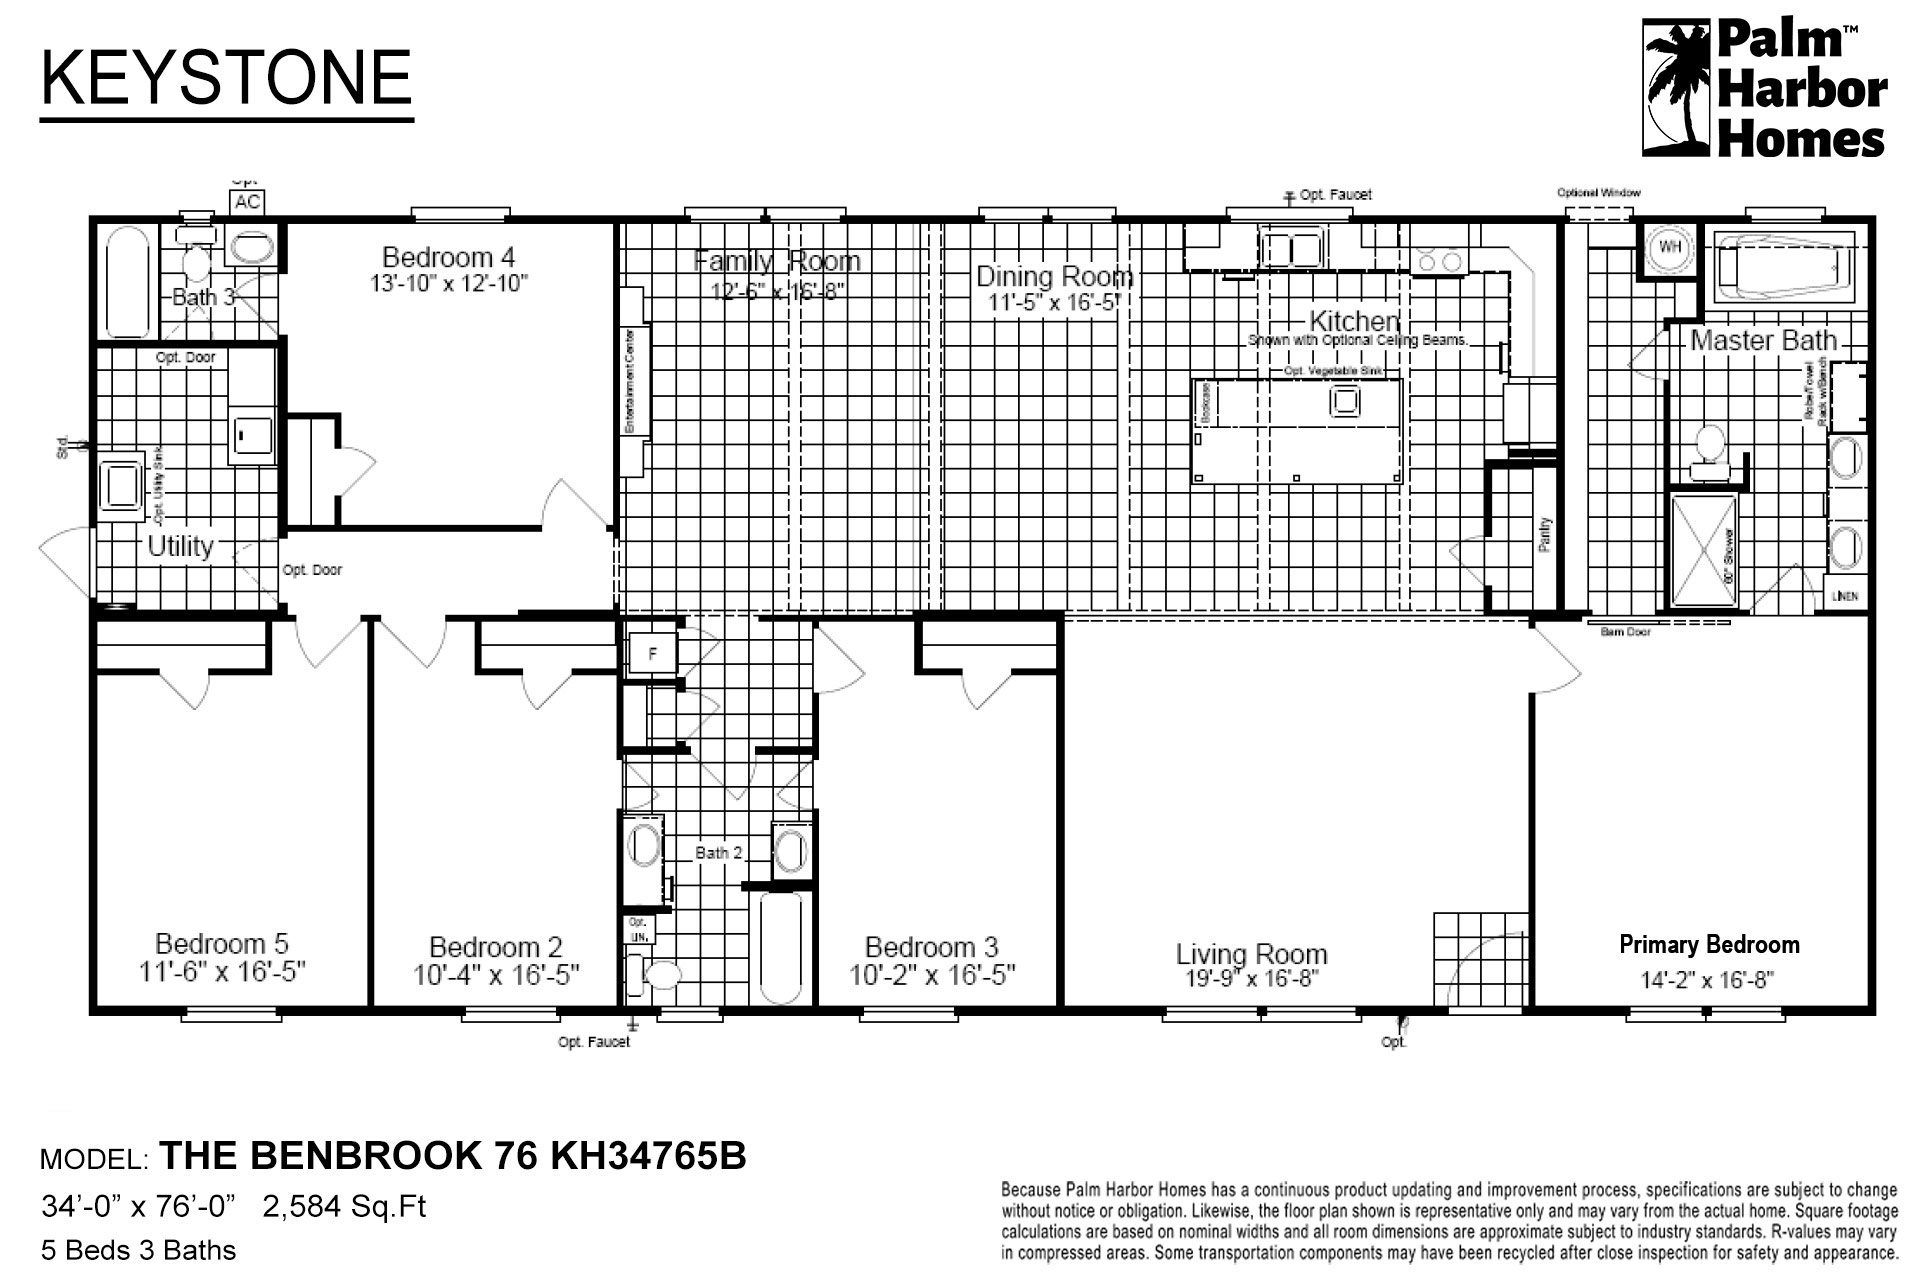 Keystone The Benbrook 76 KH34765B Layout